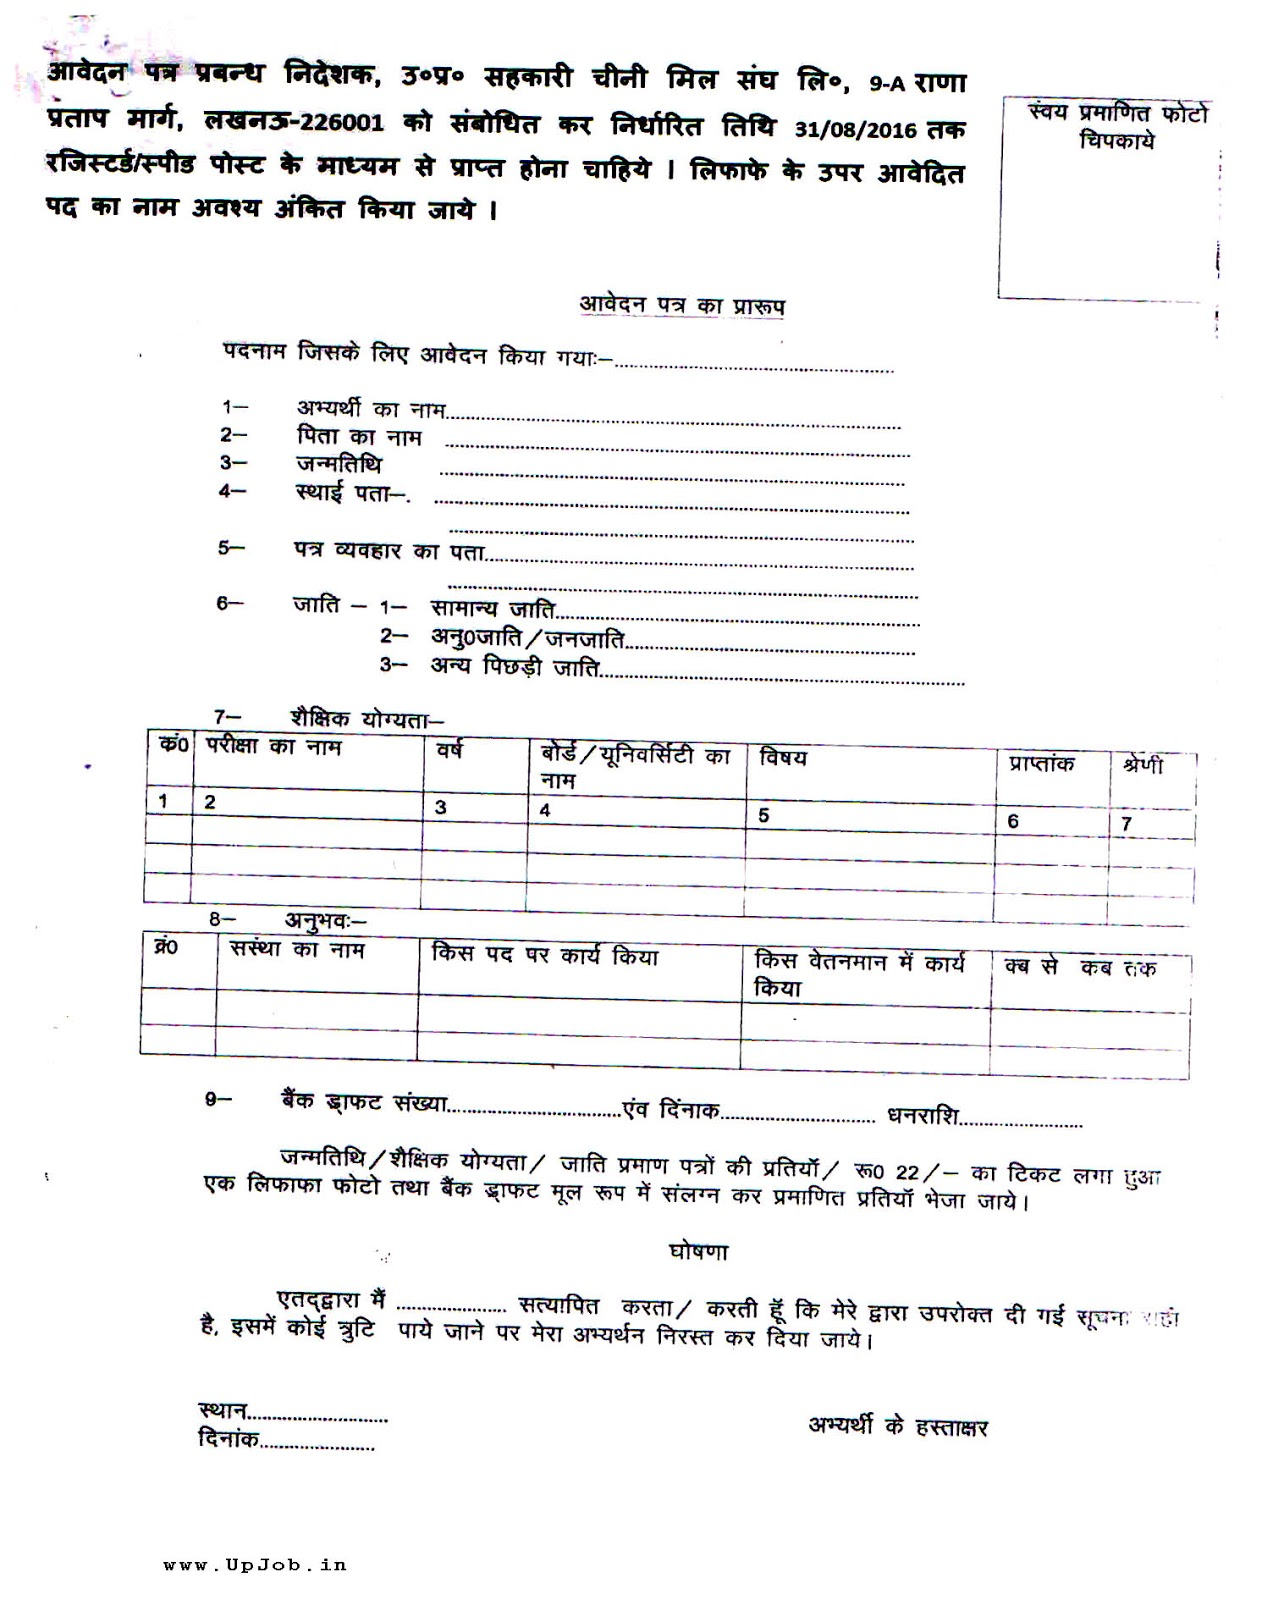 up sahkari chini mill job notification 2016 upsugarfed 97 ae je application form format